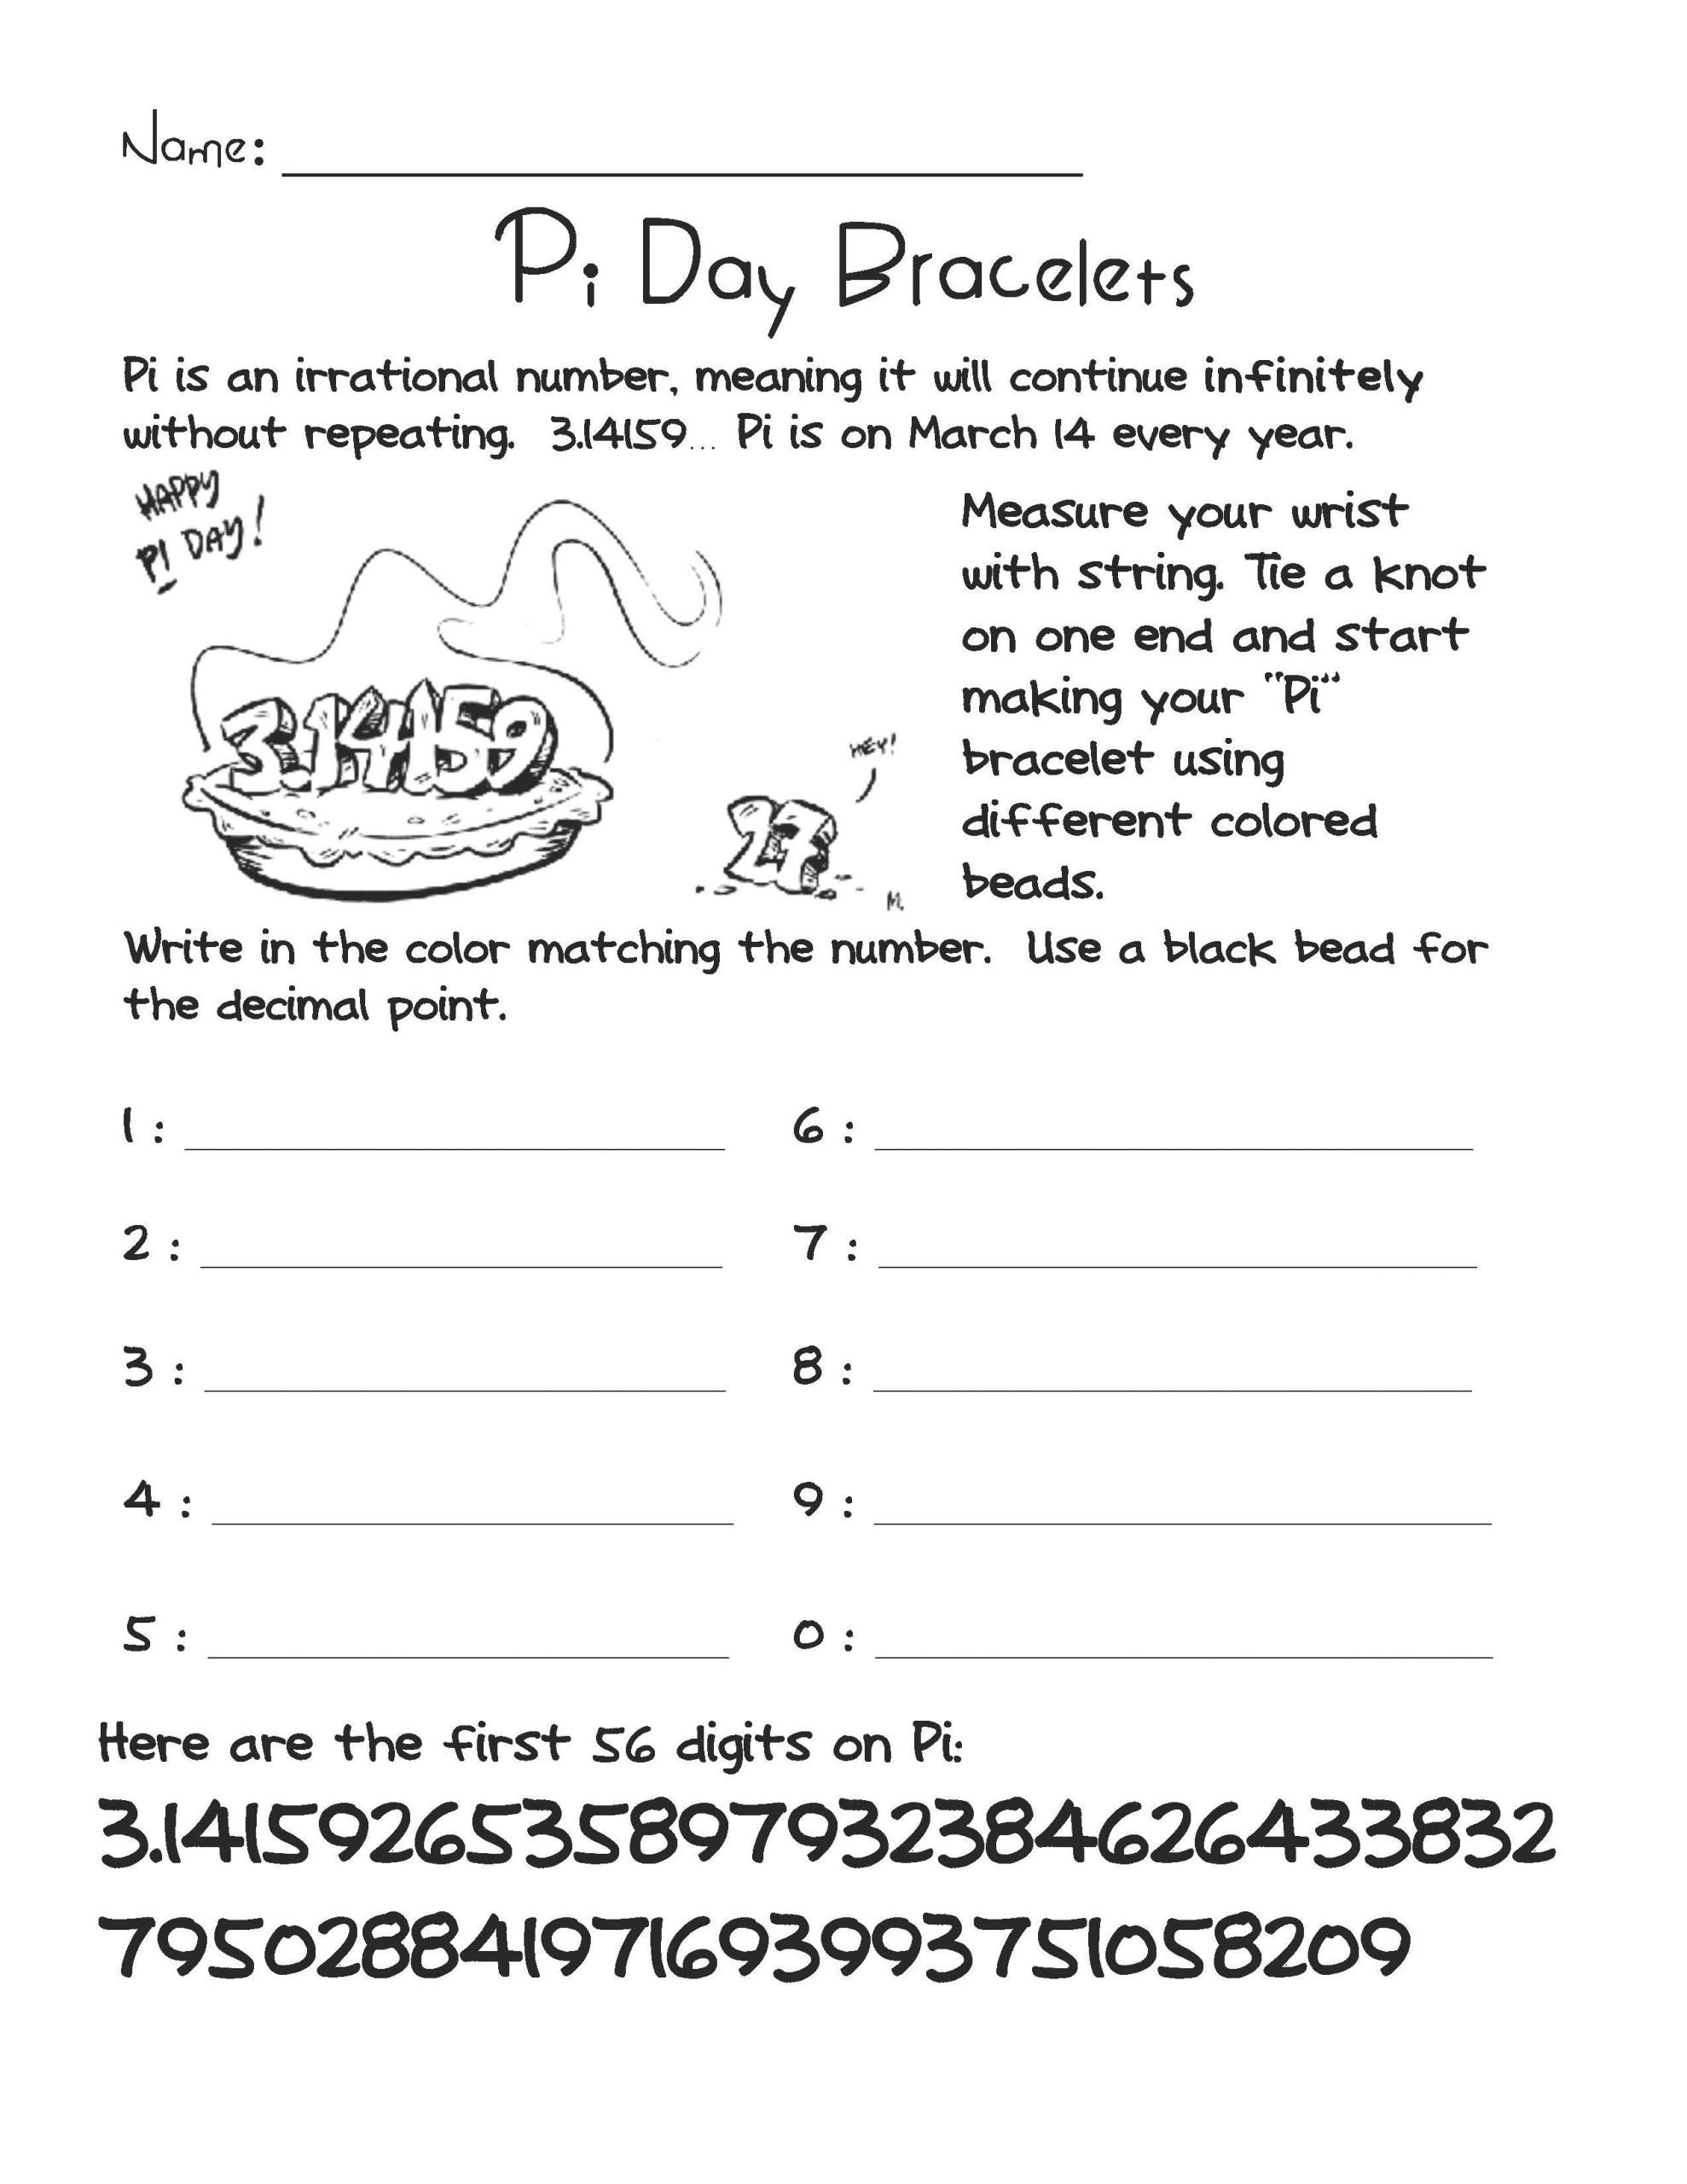 21 Ideas For Middle School Math Pi Day Activities